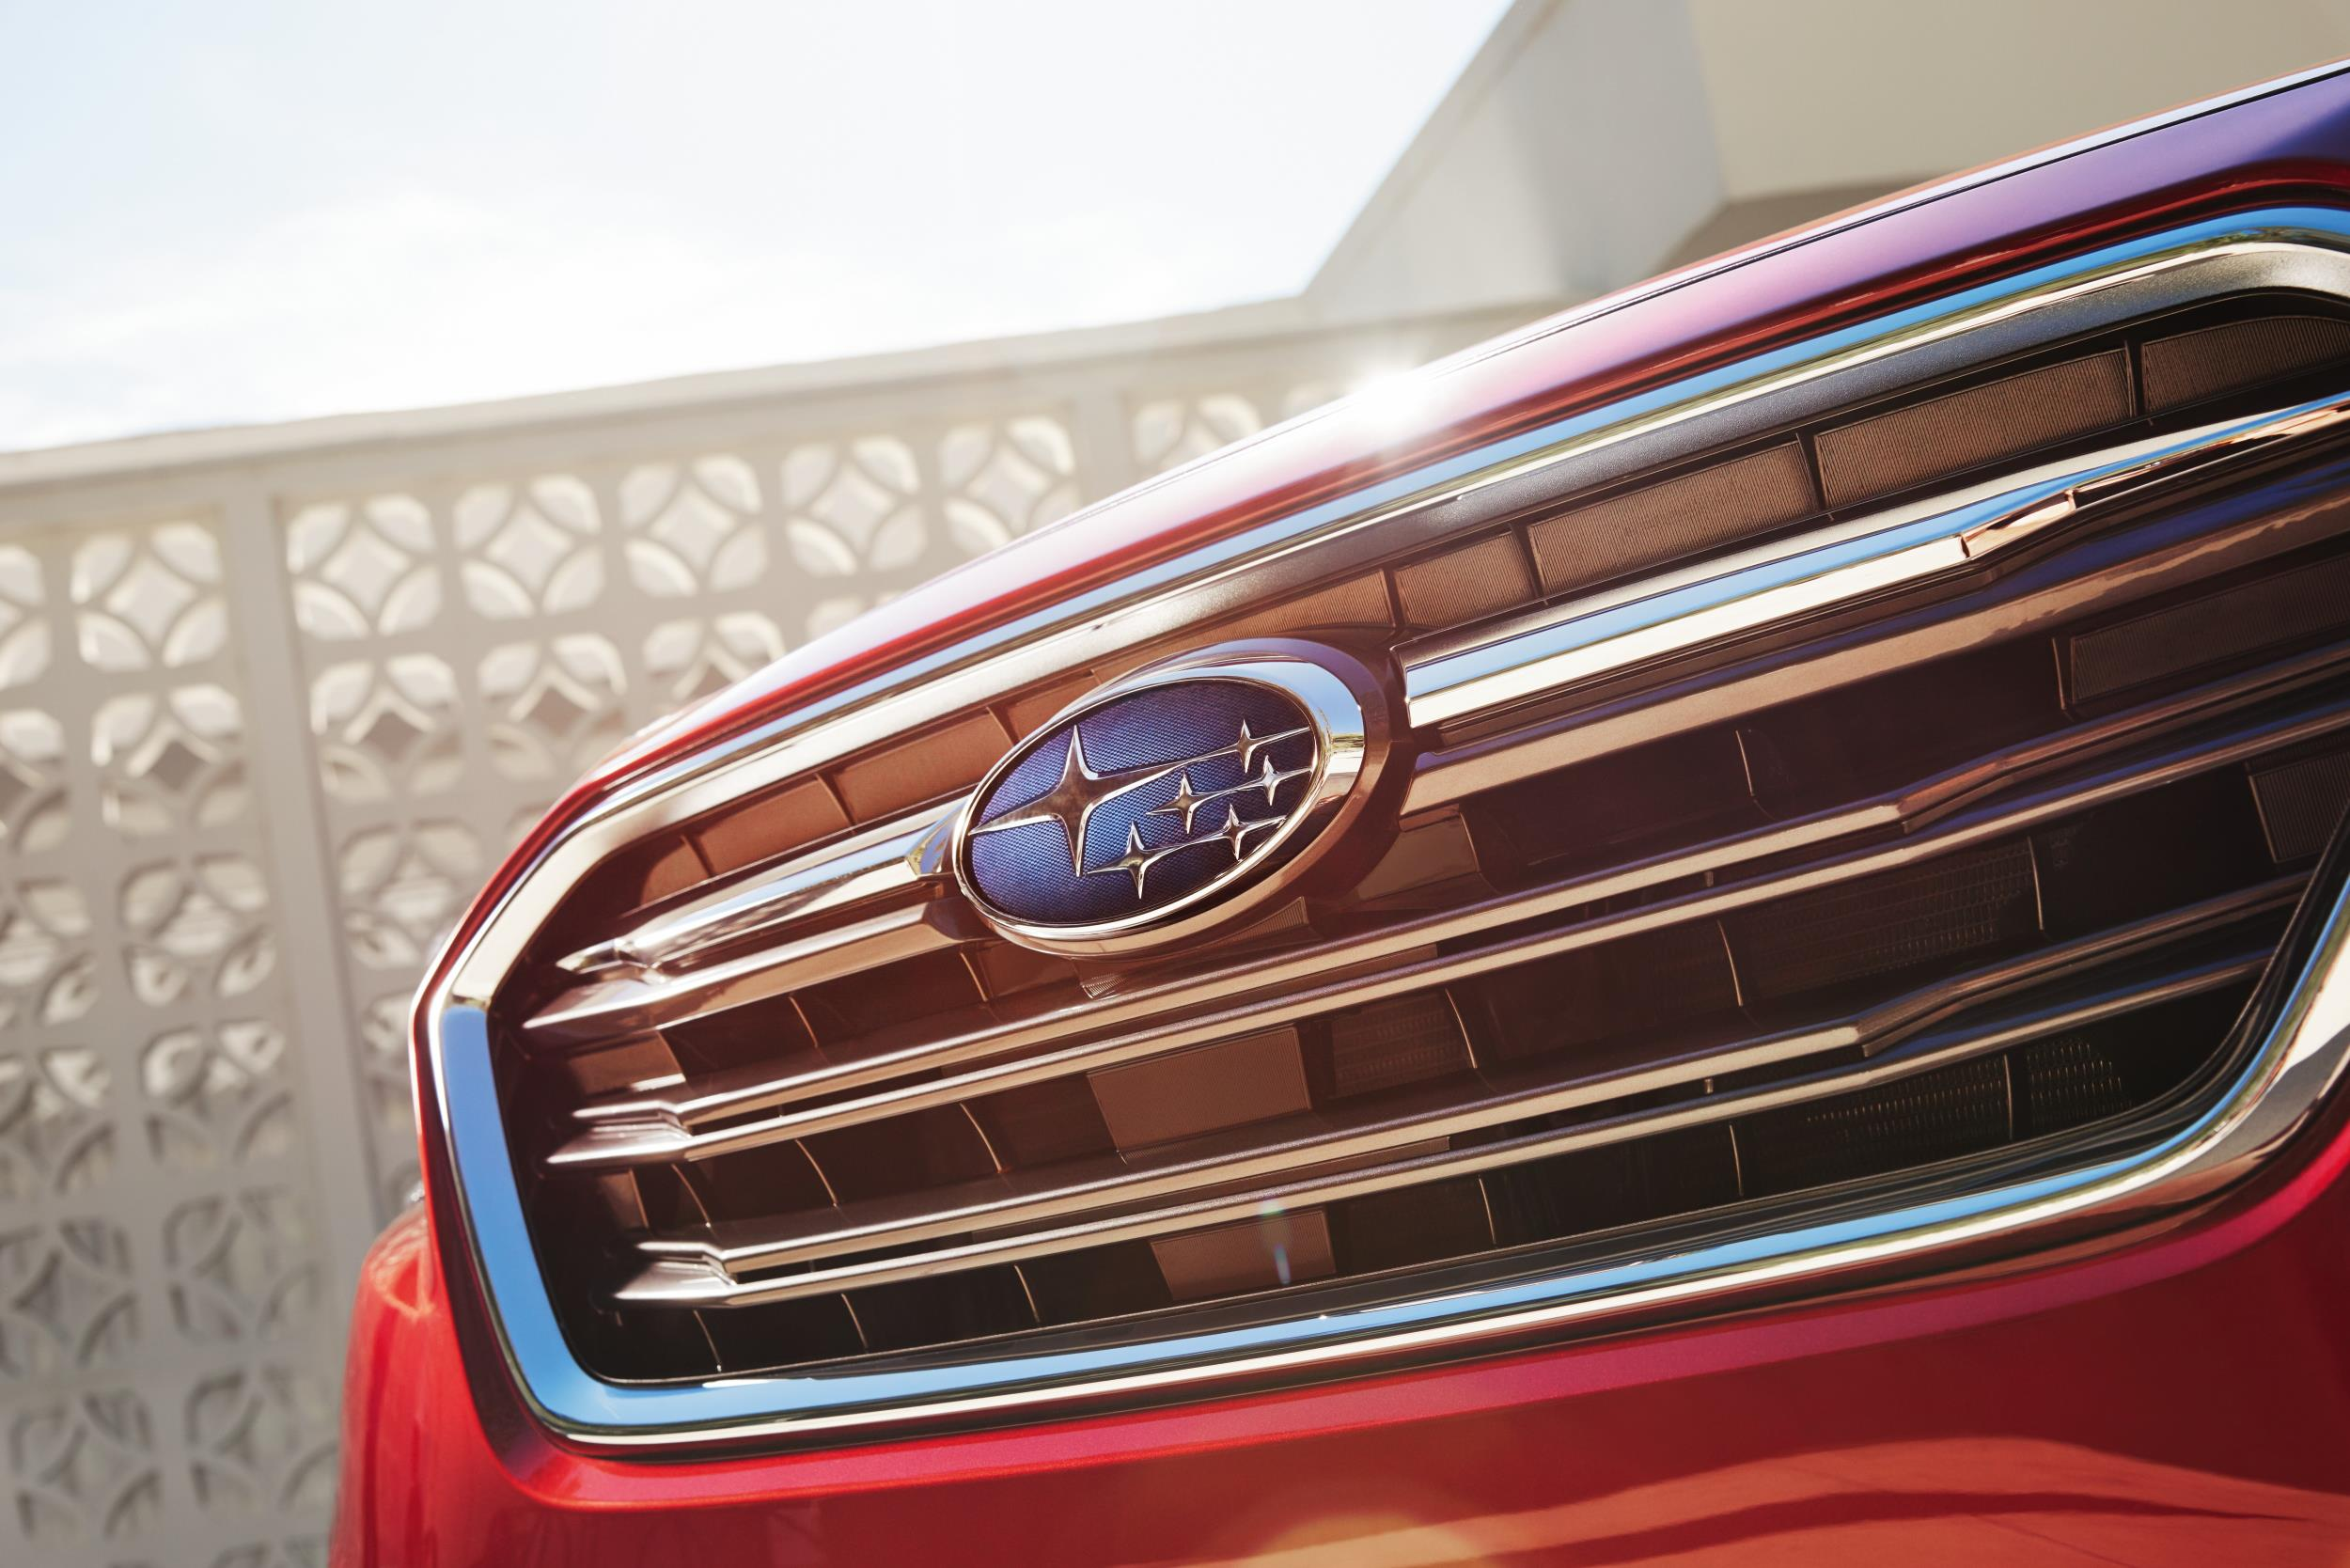 2018 Subaru Legacy Goes On Sale This Summer, Priced From